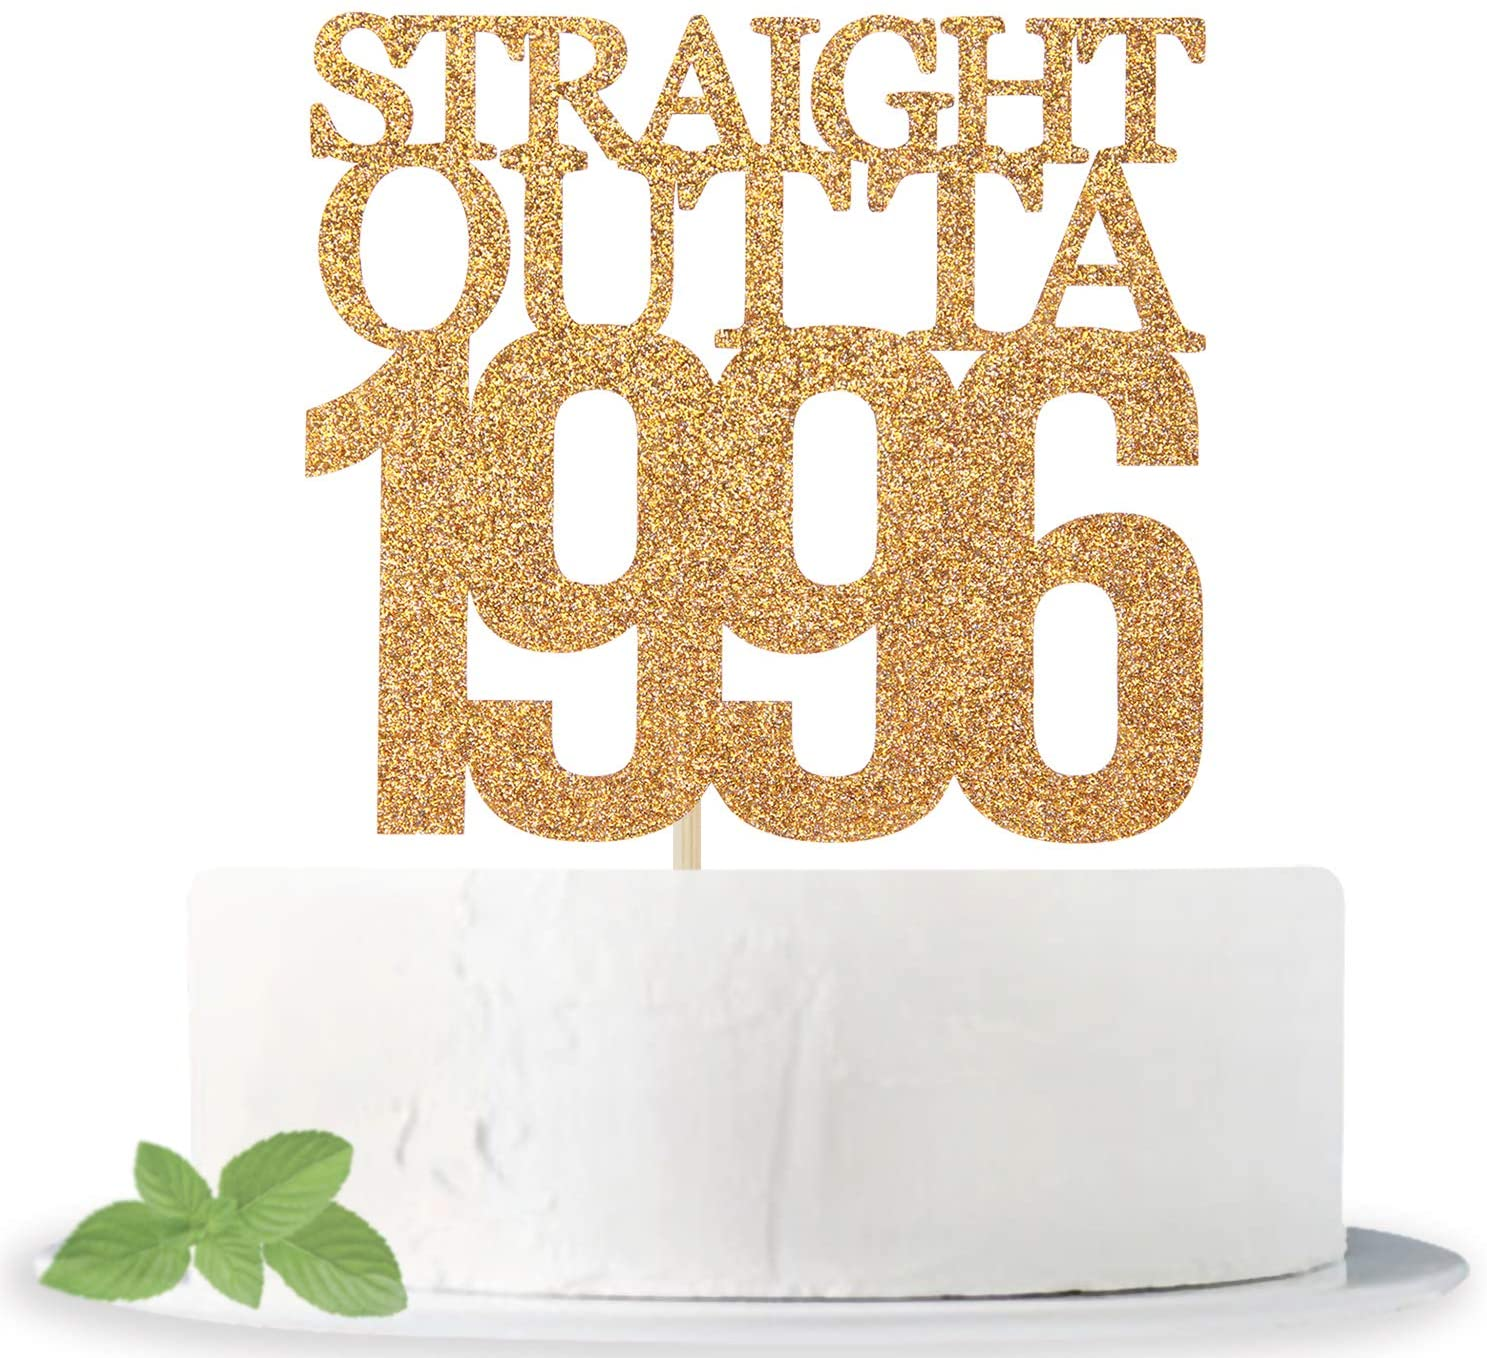 Gold Glitter Straight Outta 1996 Cake Topper - Cheers to 24 Years - 24 and Fabulous Cake Topper - 24th Birthday/Wedding Anniversary Party Sign Decorations